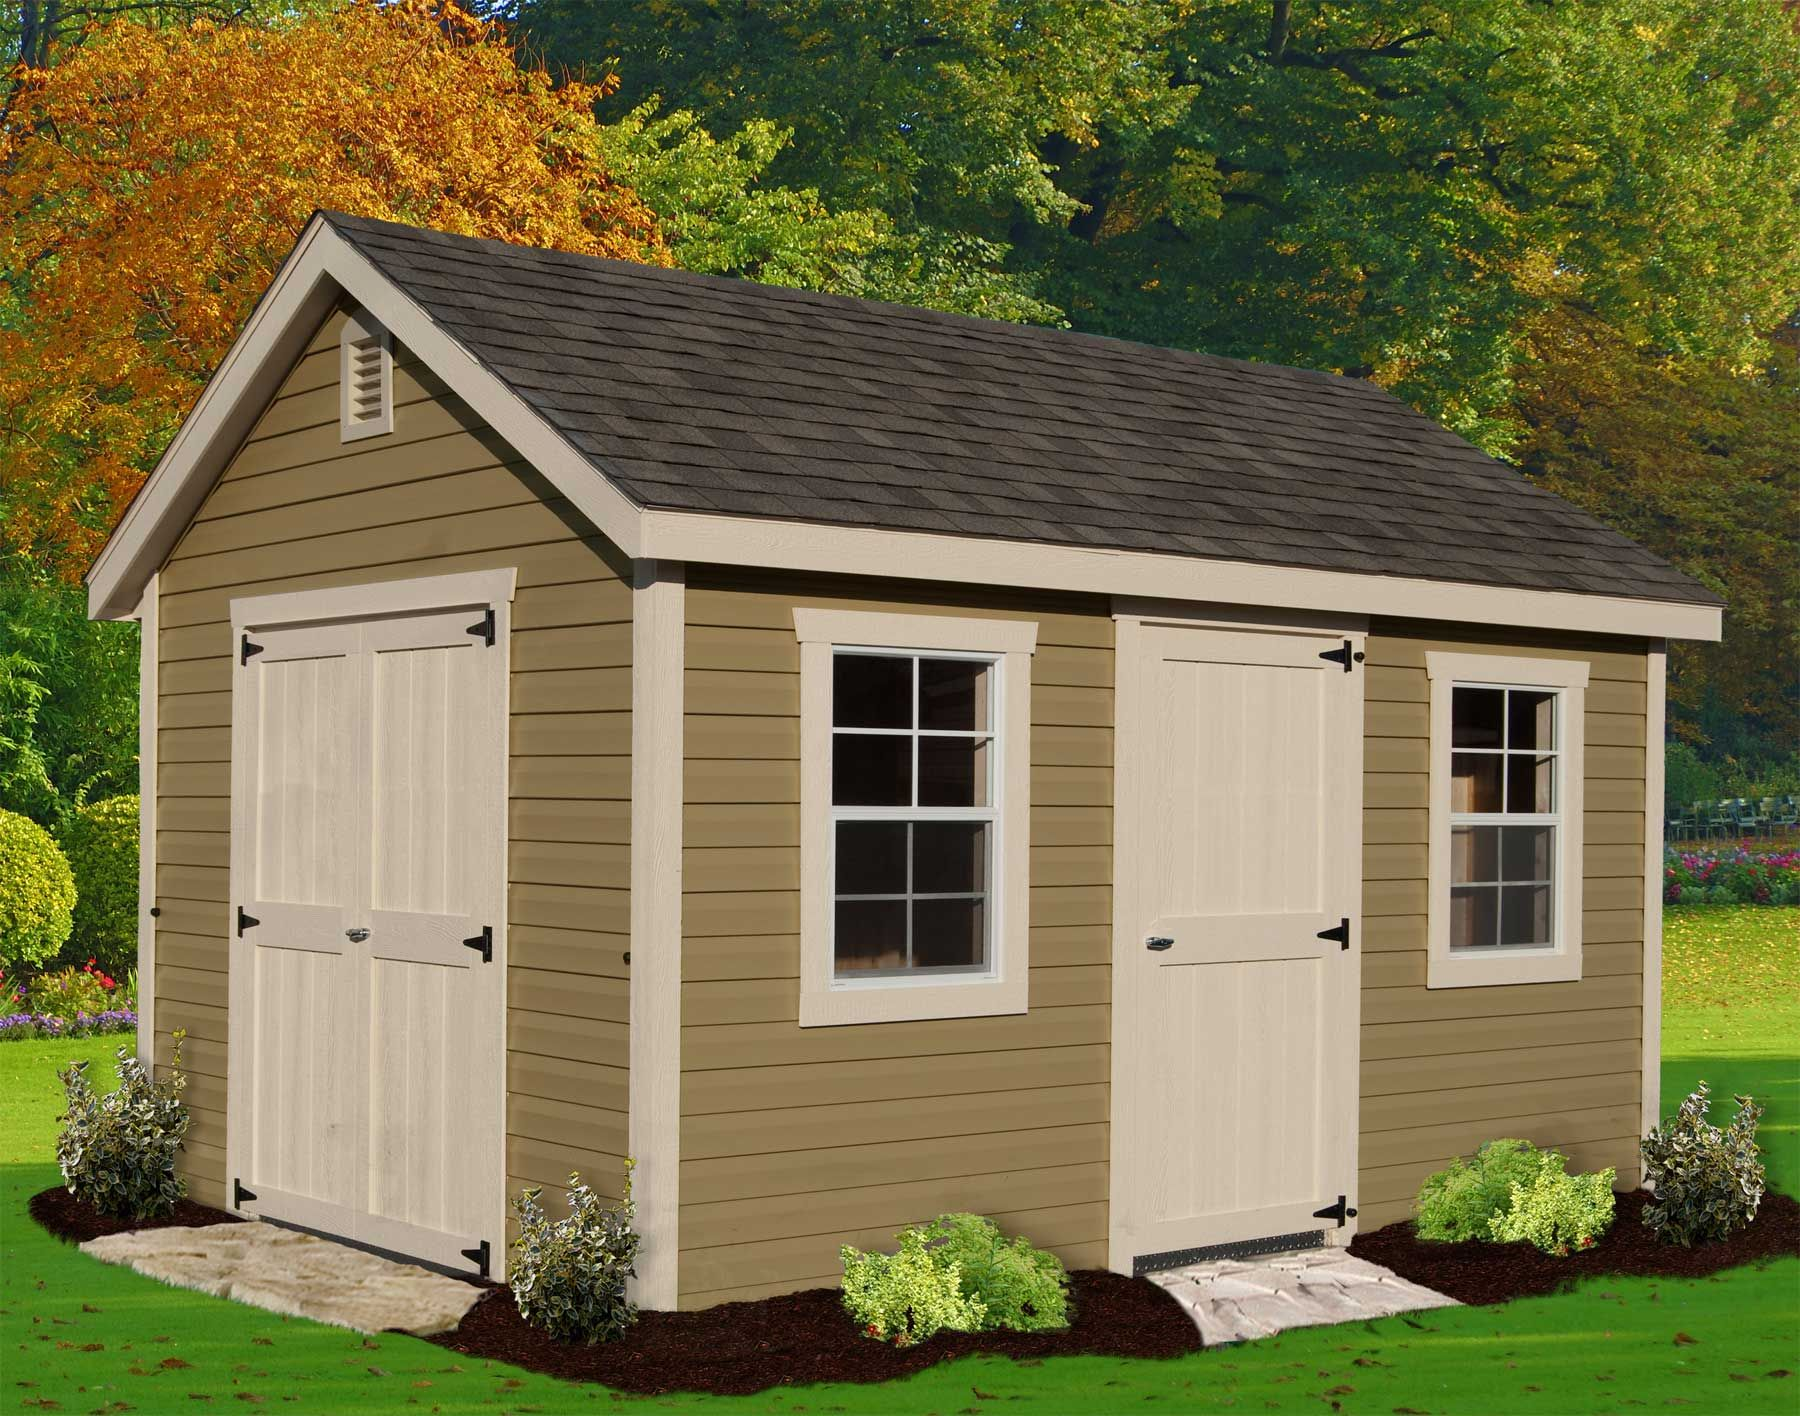 ^ 1000+ images about Backyard Sheds on Pinterest